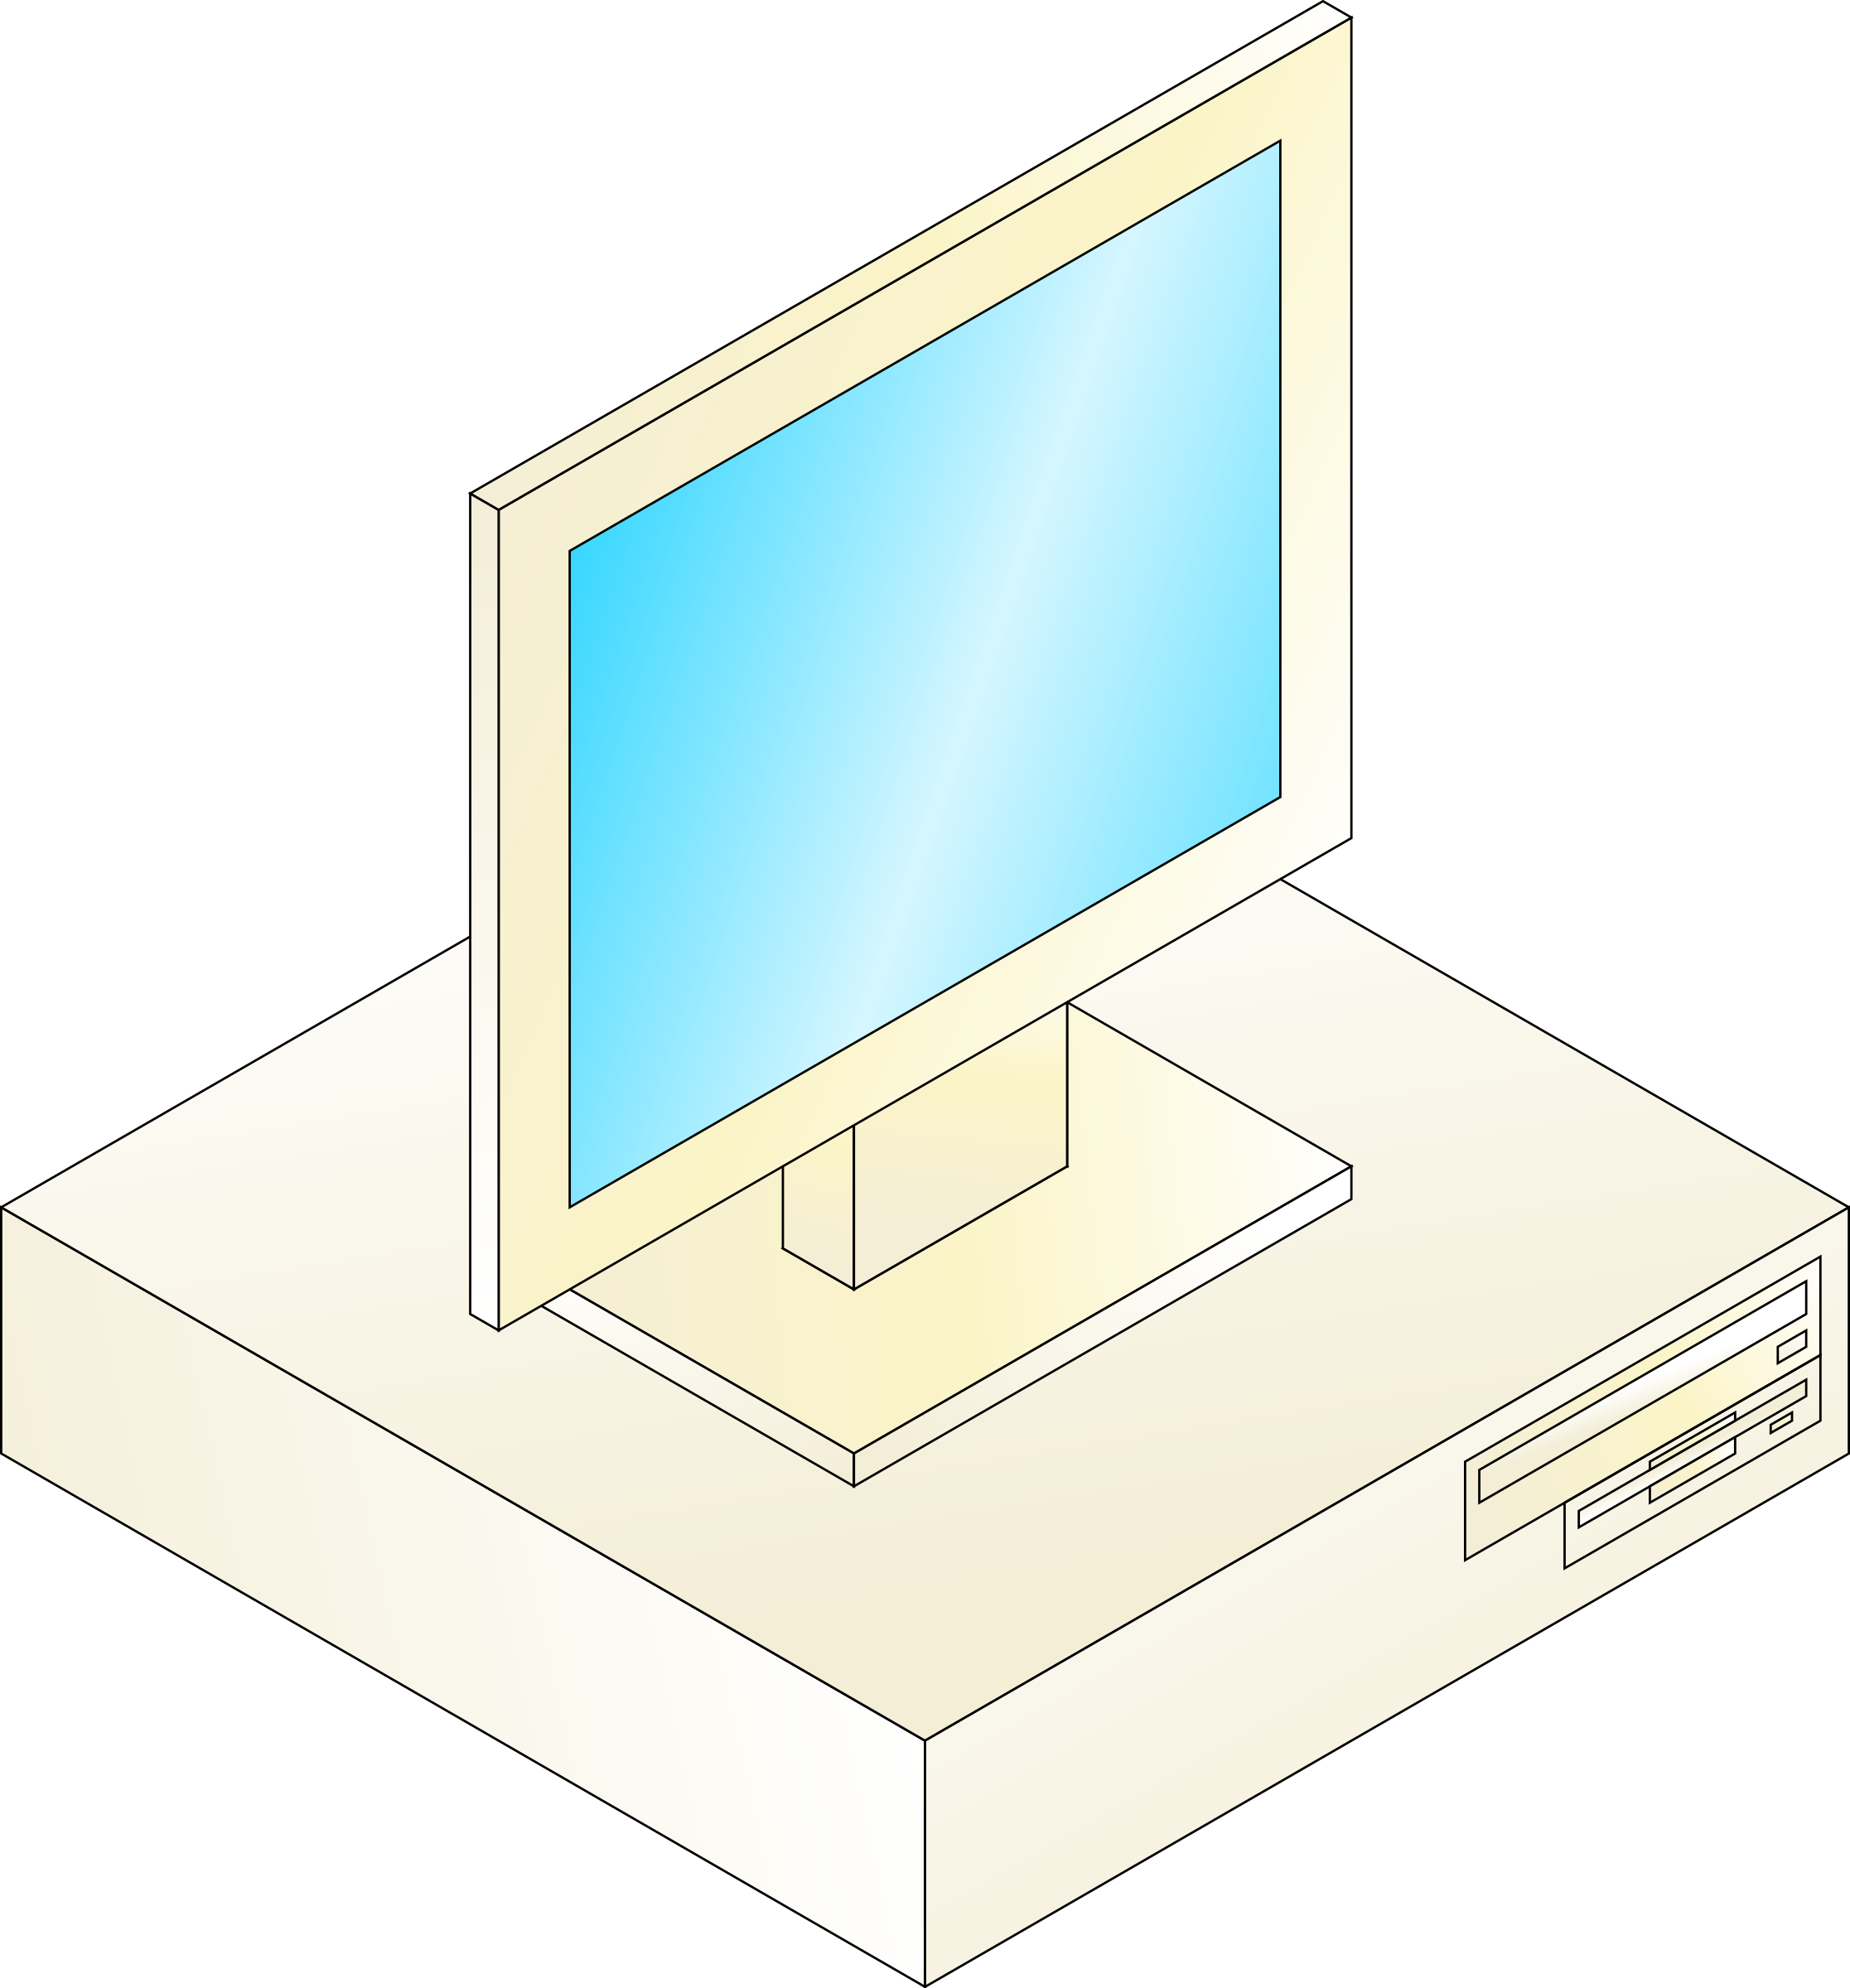 Desktop with monitor on. Clipart definition computer